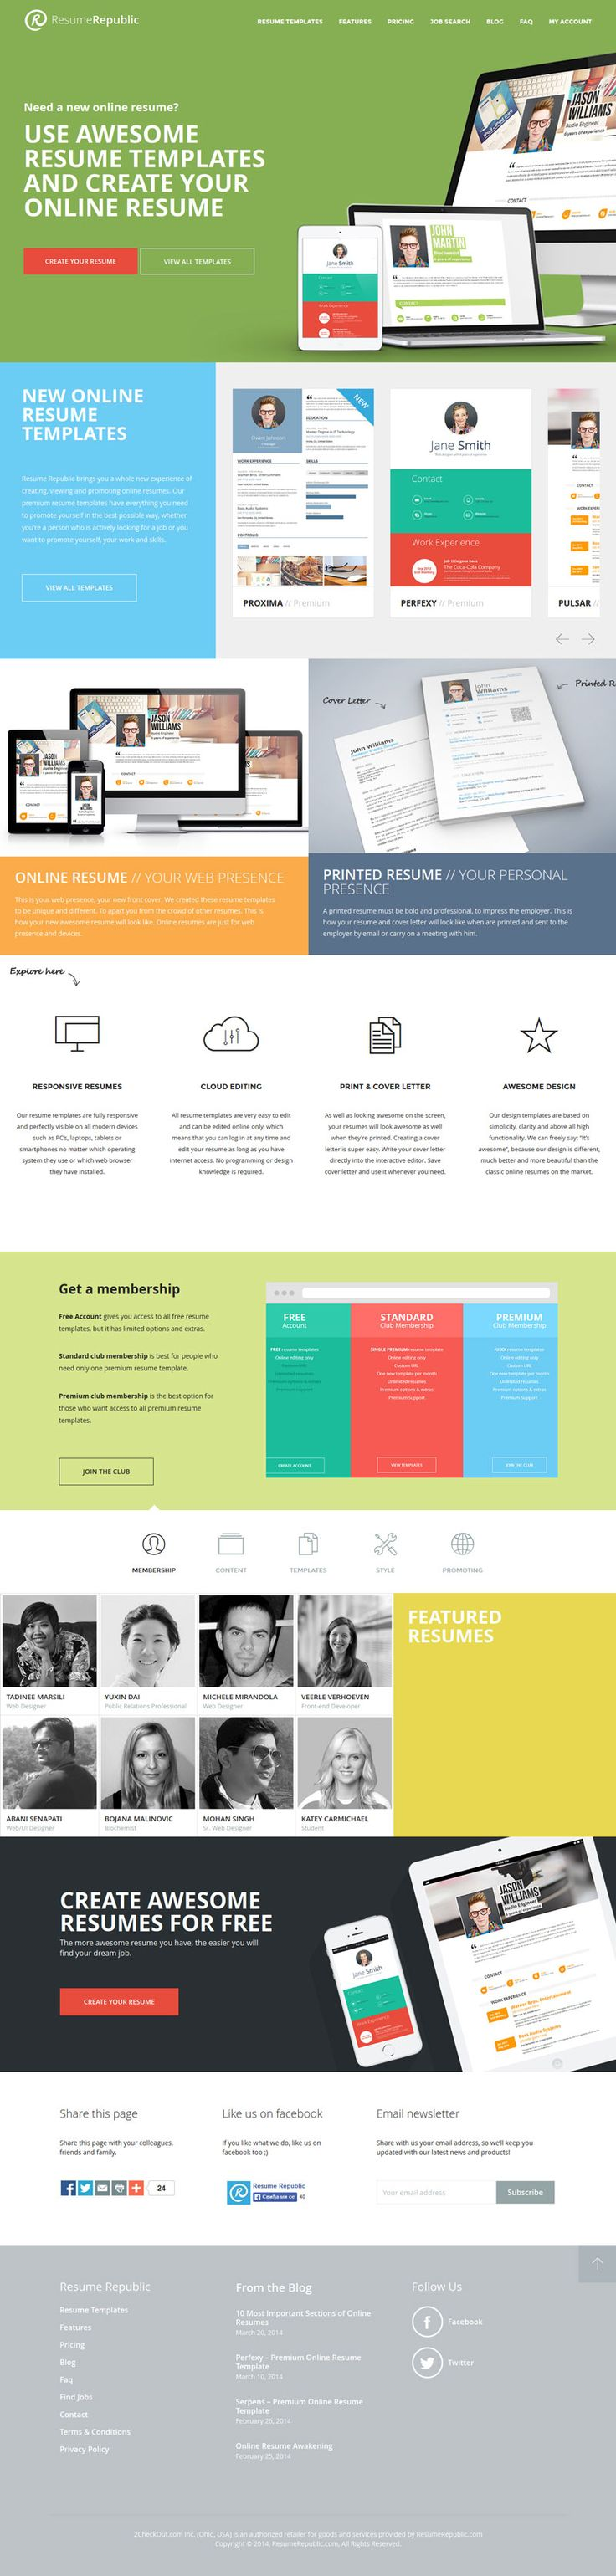 resume Flat Design Resume 9 best images about cv flat design on pinterest layout template find this pin and more design